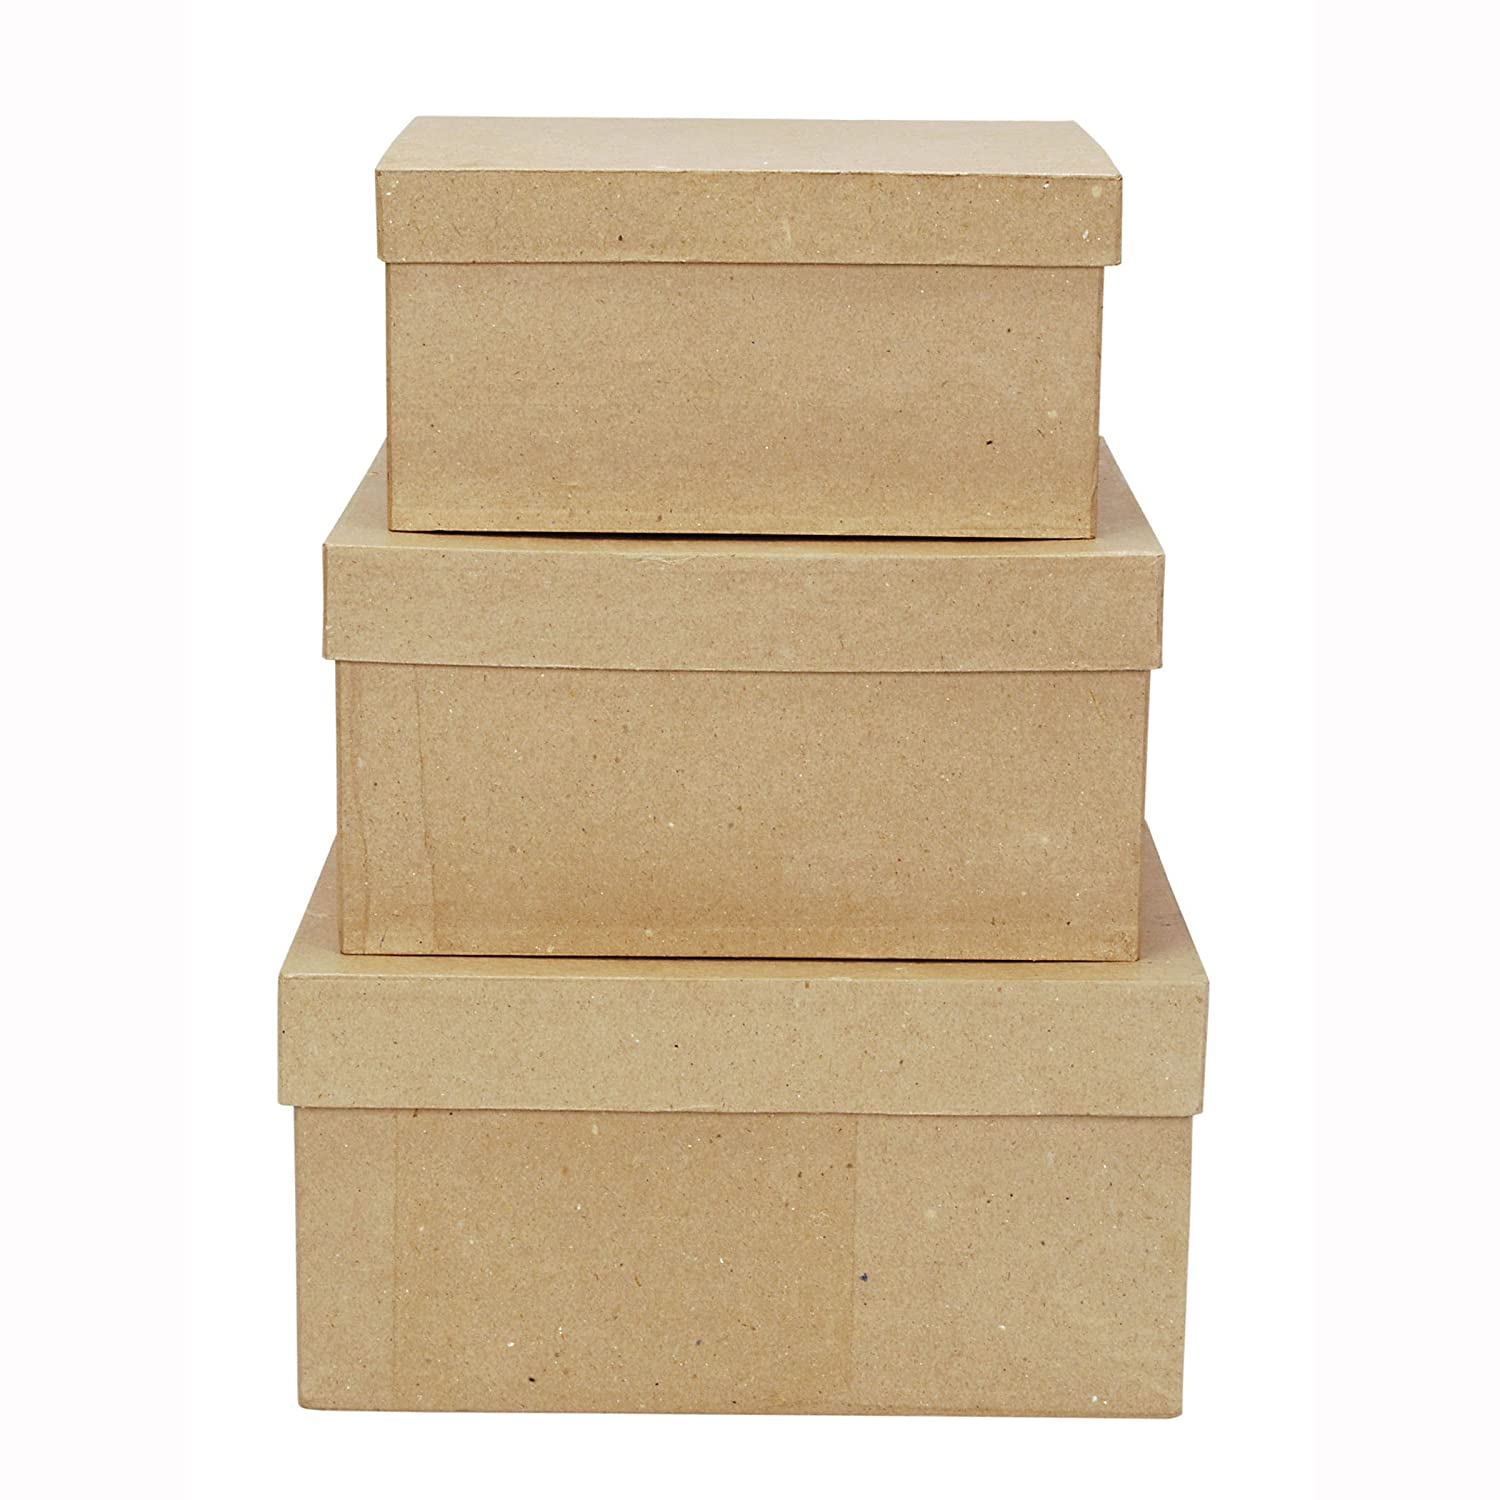 Amazon.com: Darice 2849-06 Paper Mache Boxes for Craftwork, 8, 9 and ...